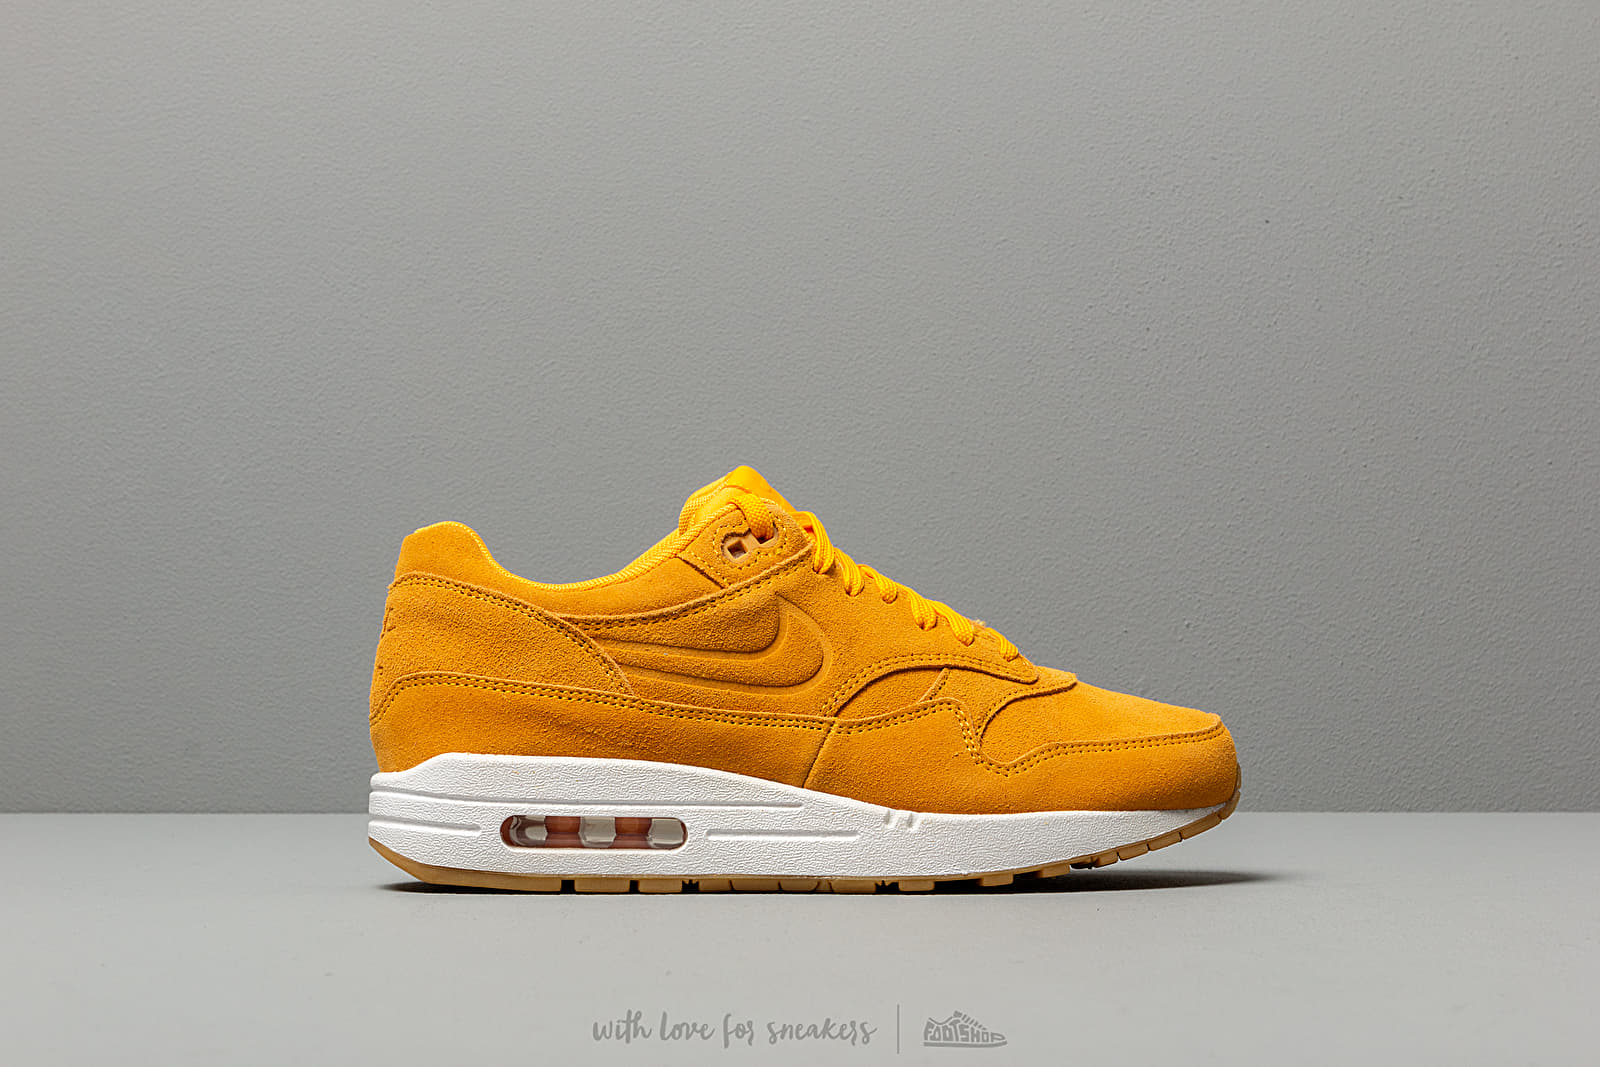 online retailer 8f786 eb228 Nike Wmns Air Max 1 Premium University Gold  University Gold at a great  price 136